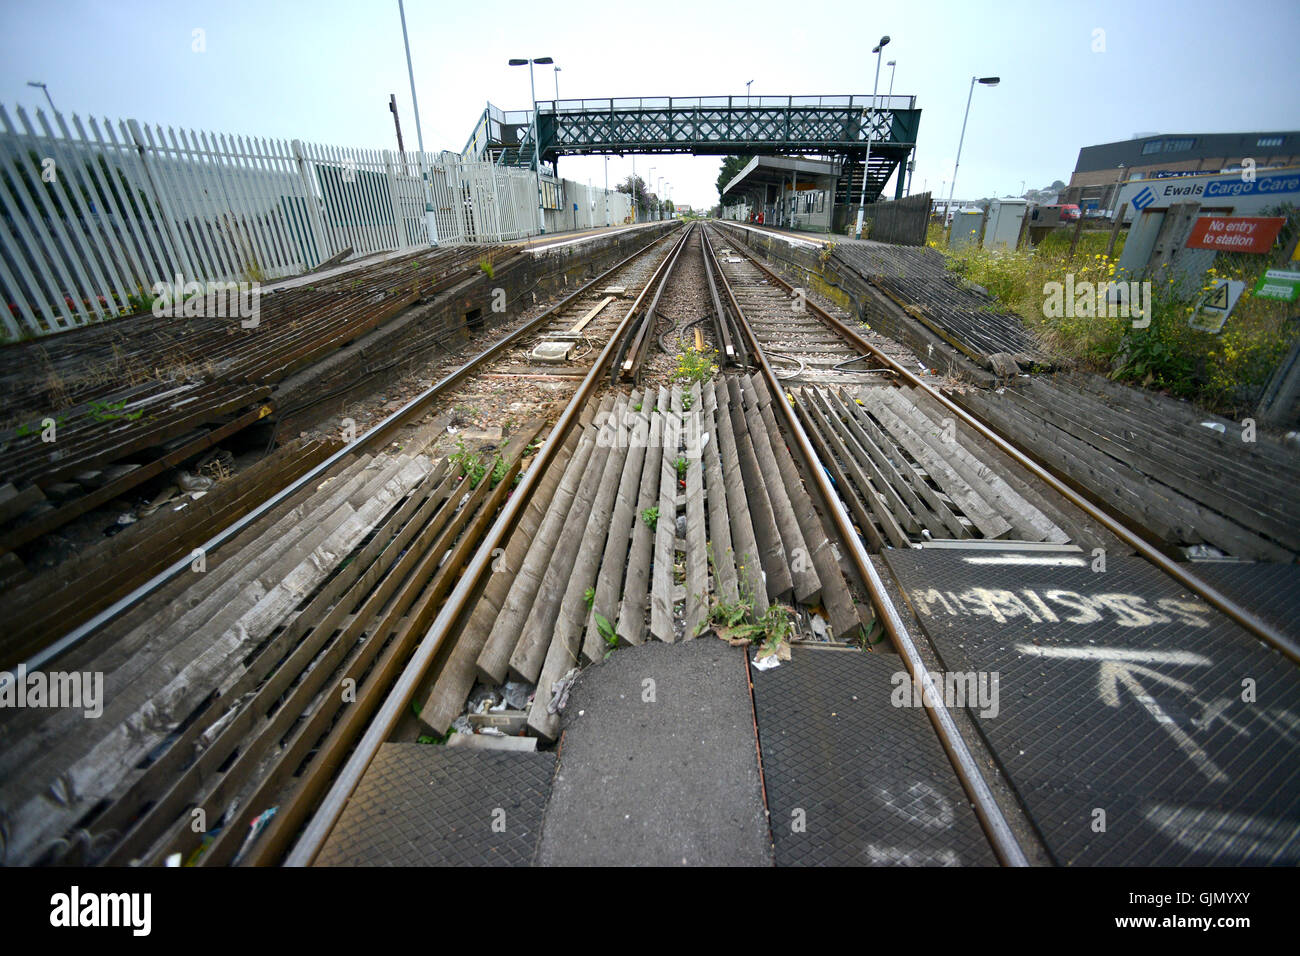 Run down train station at Newhaven, UK, operated by Southern rail - Stock Image